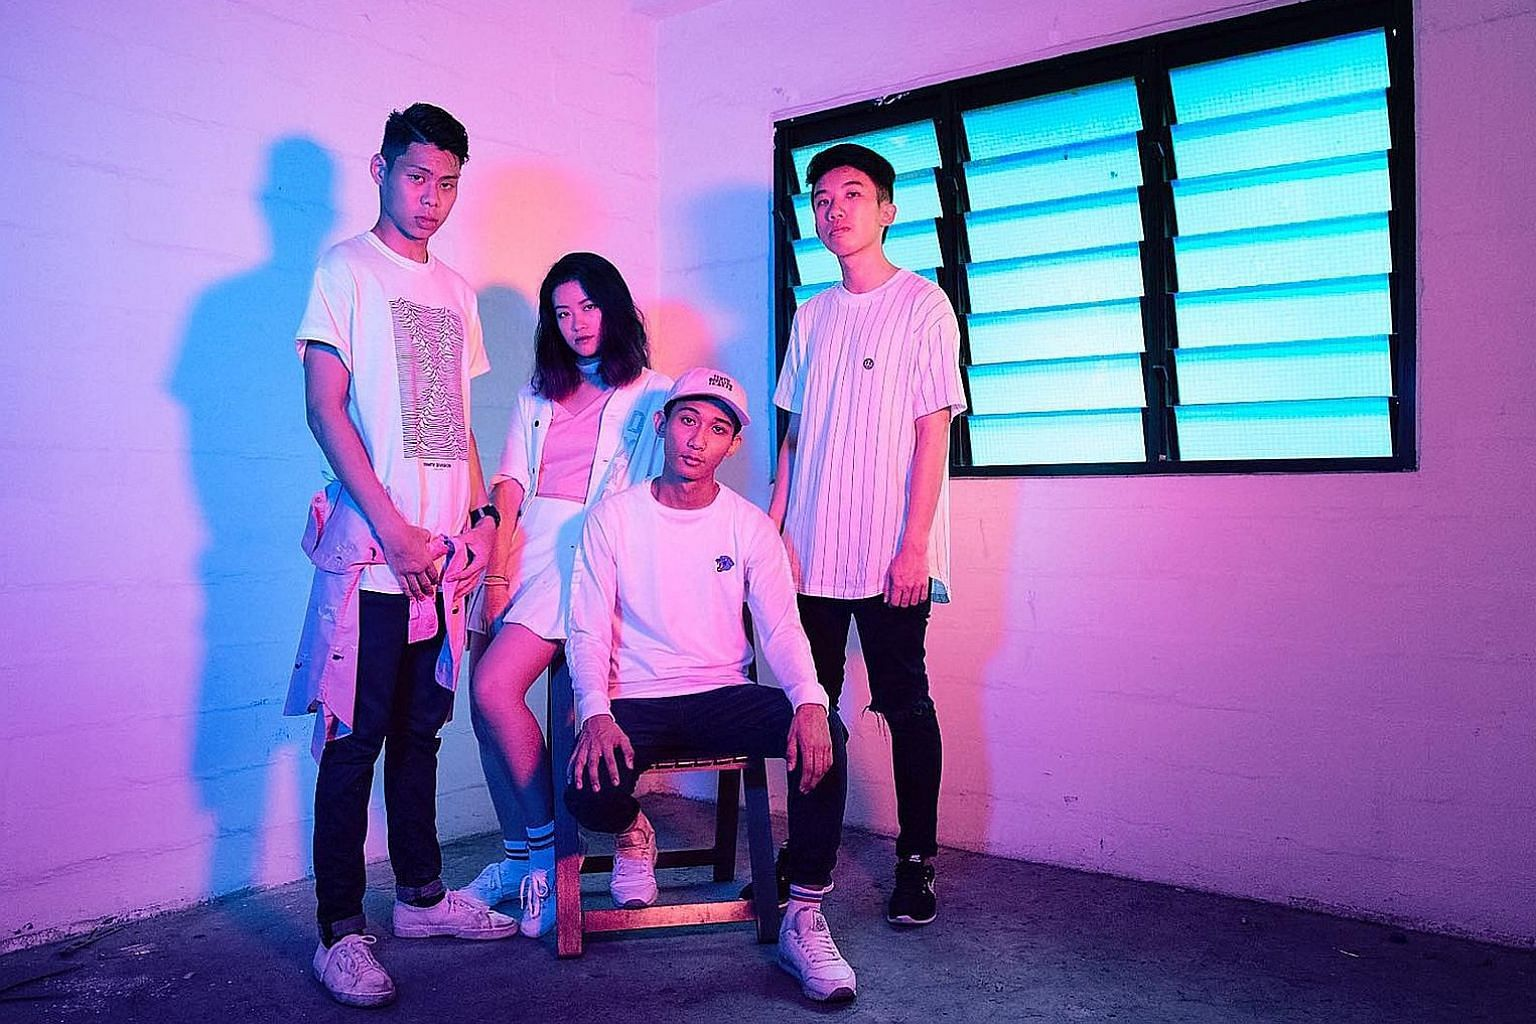 Live music acts such as local electro-pop band Disco Hue will perform at Gillman Barracks on Friday.